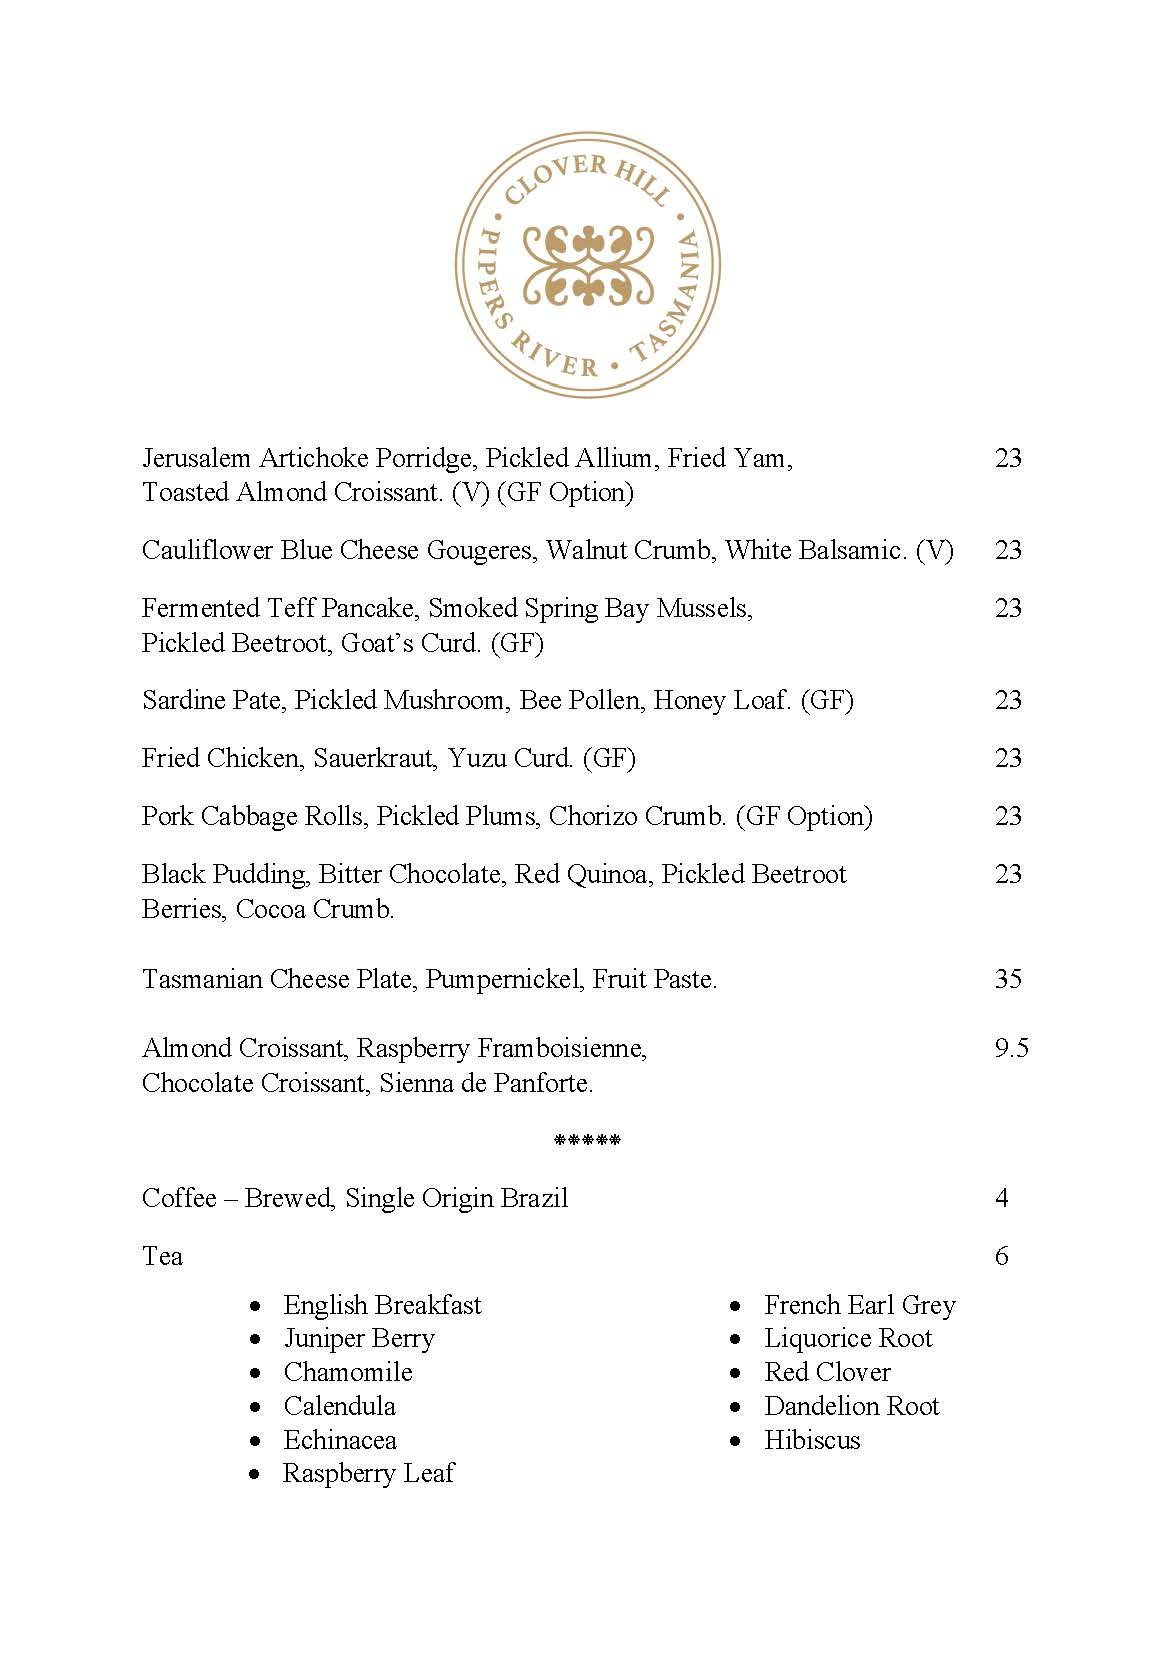 A sample of the Clover Hill cellar door menu. Our share plates are prepared from seasonal, local produce and are subject to change.